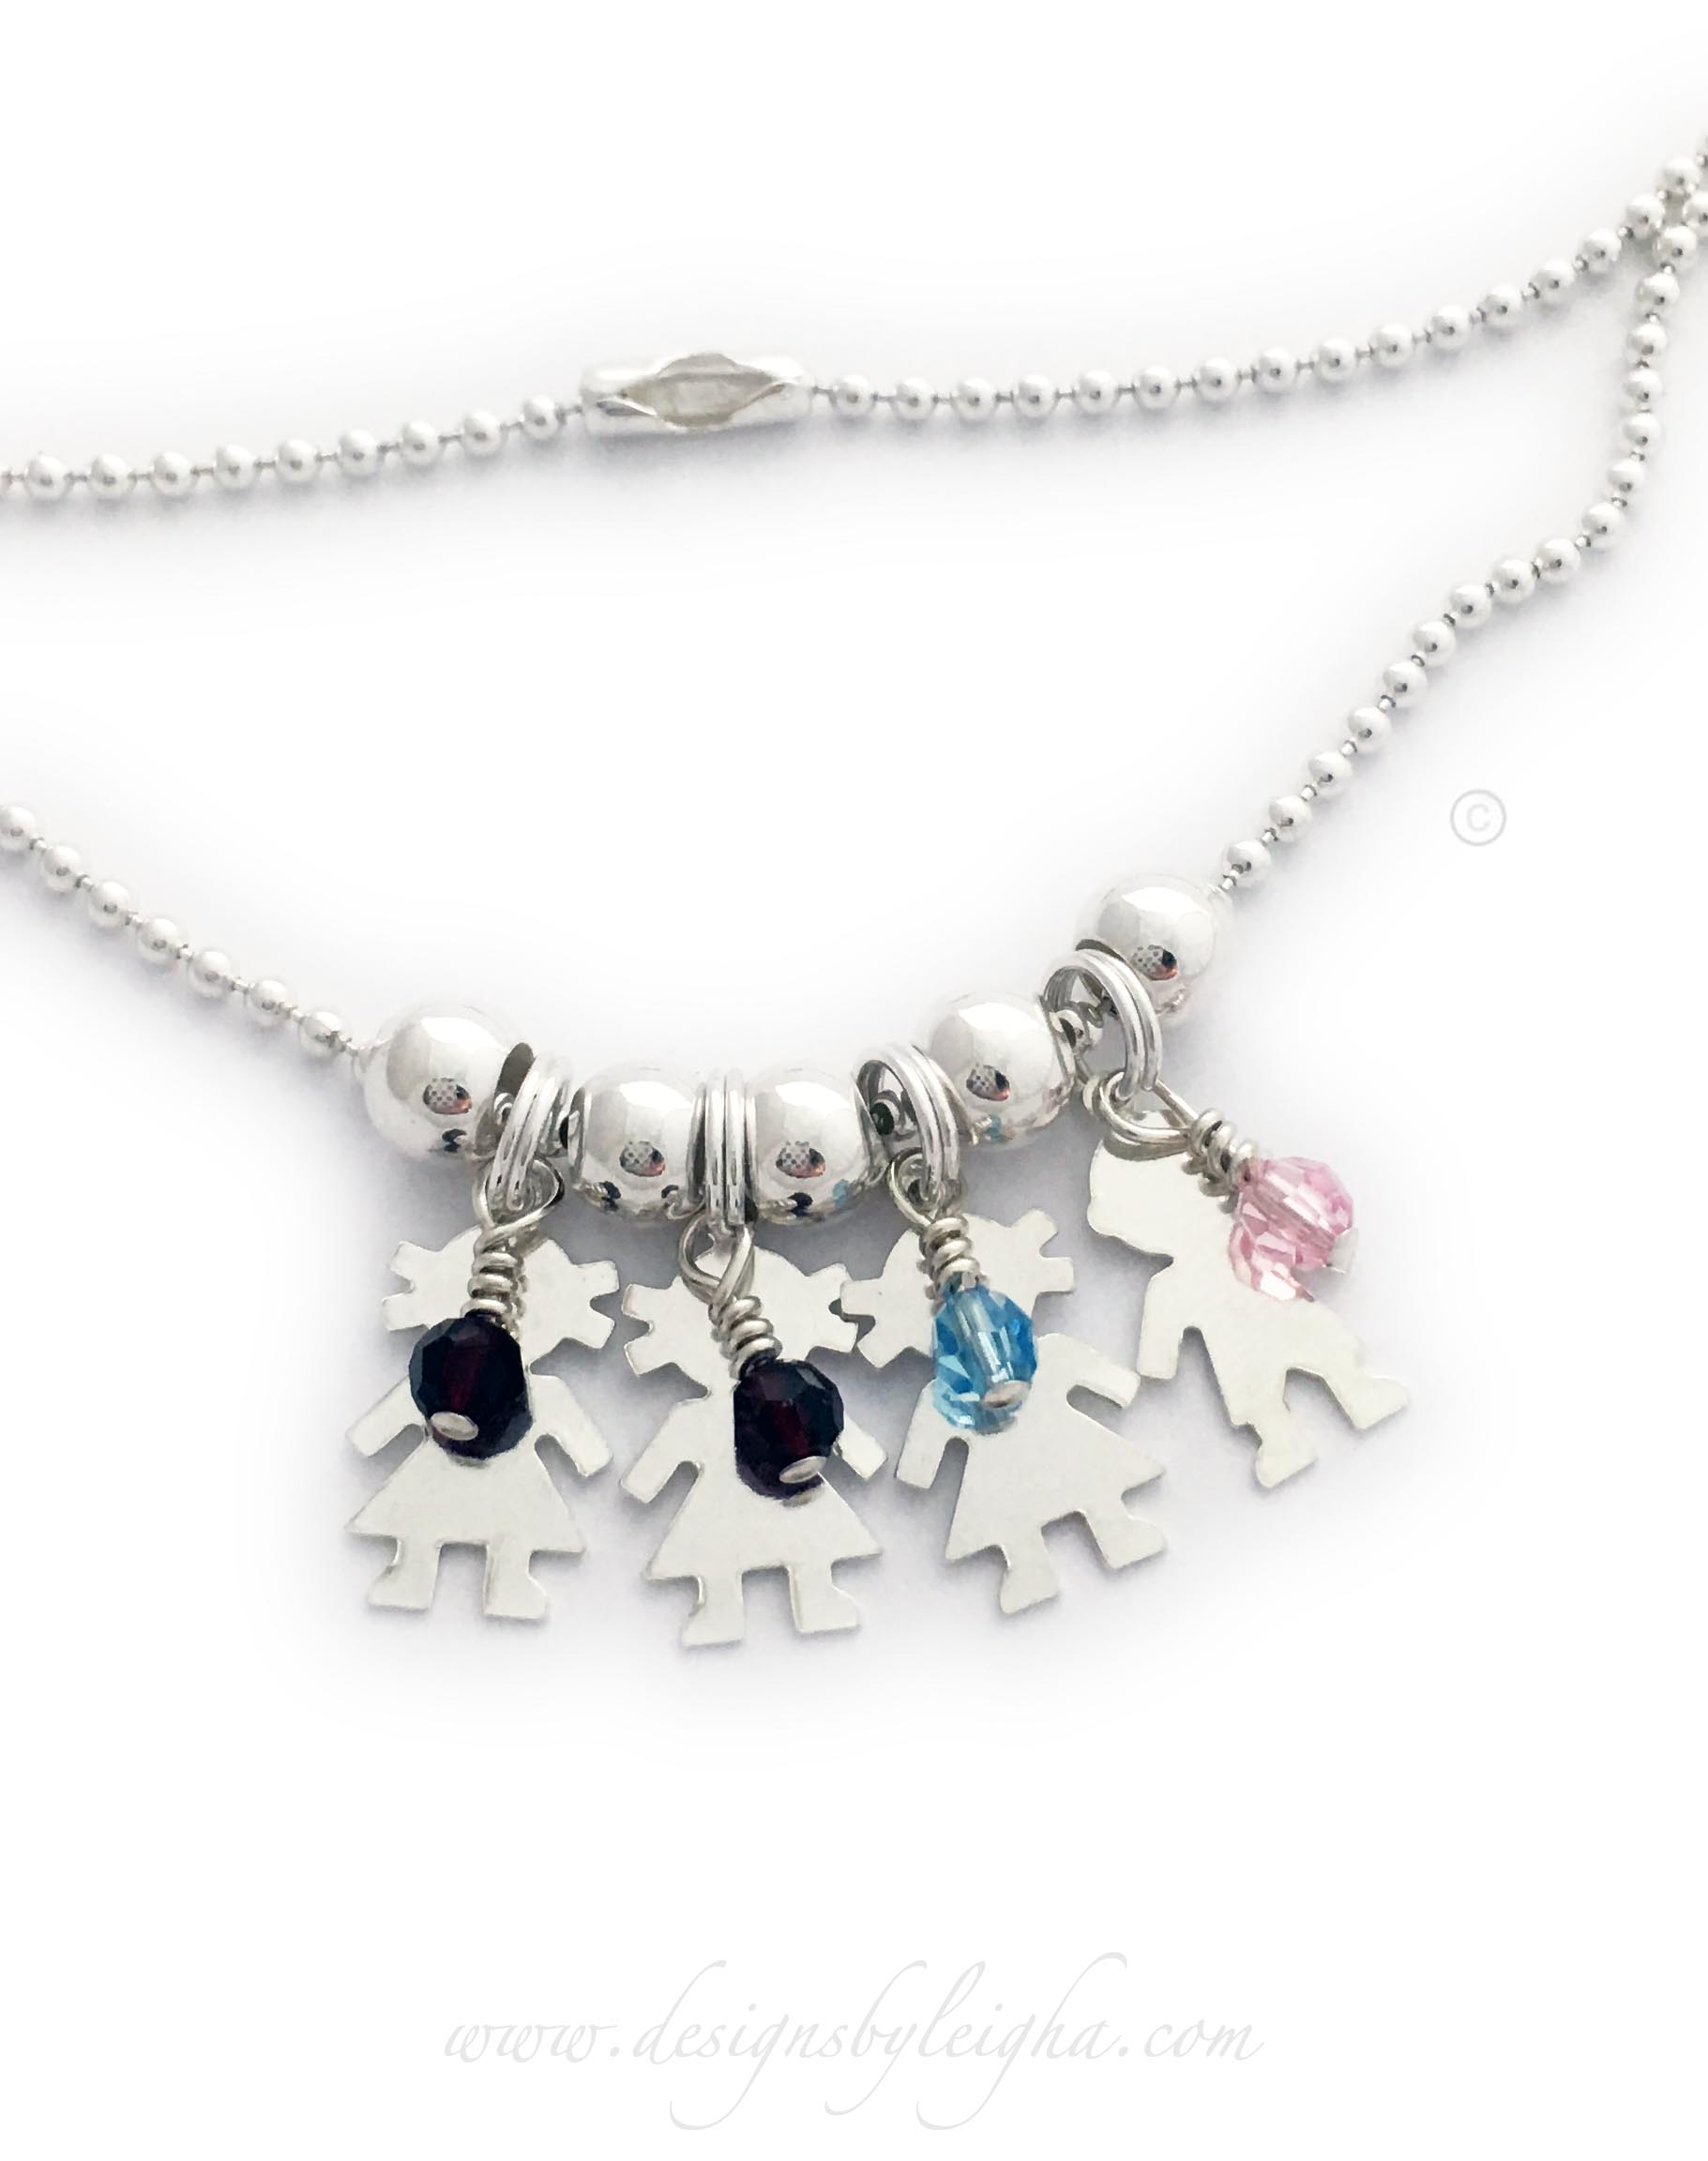 Boy & Girl Charm Necklace shown with 4 kid charms and 4 birthstones on a Ball Chain necklace.